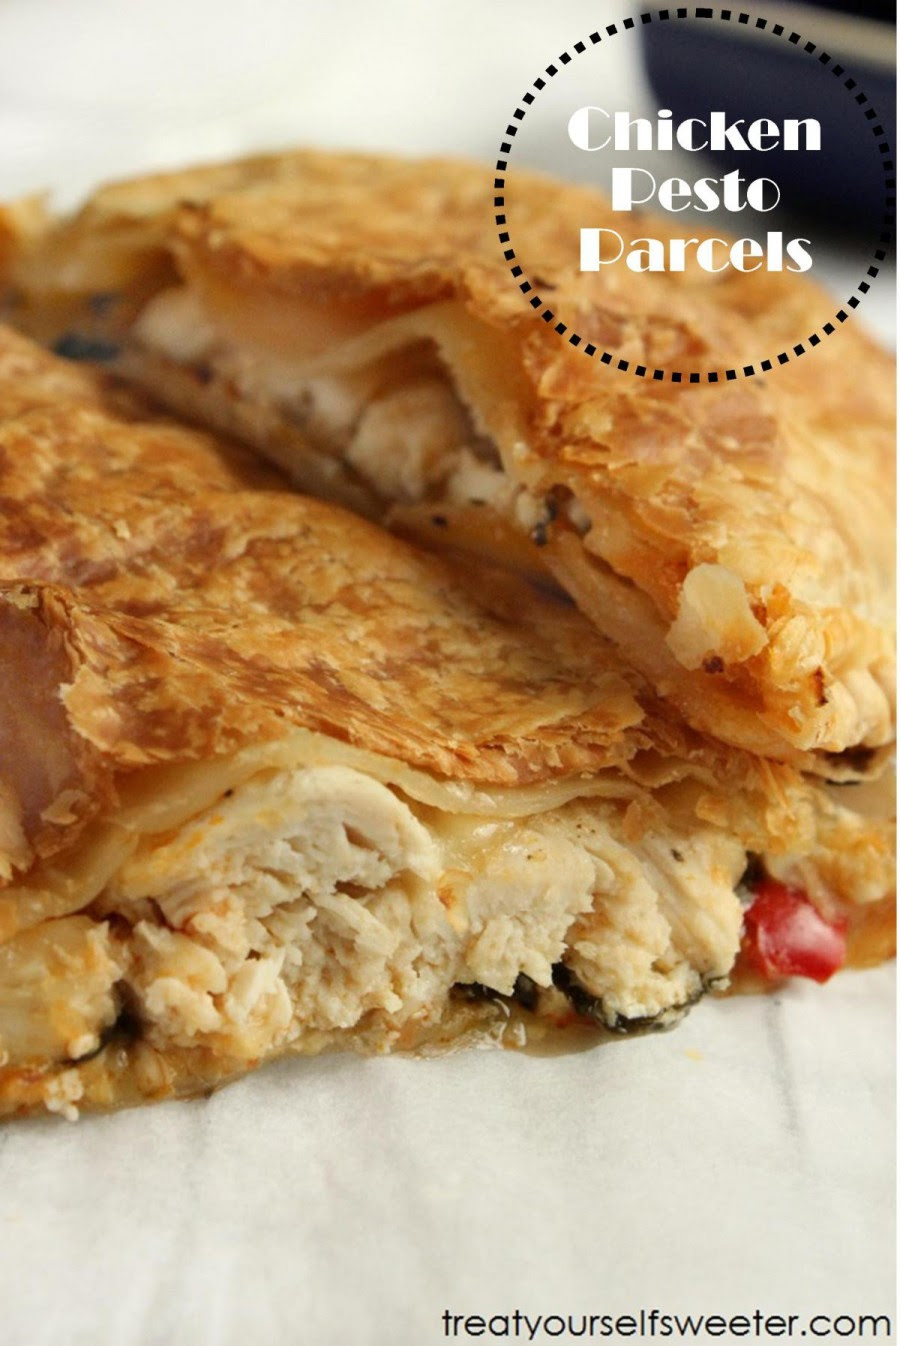 Chicken-Pesto-Parcels-with-text